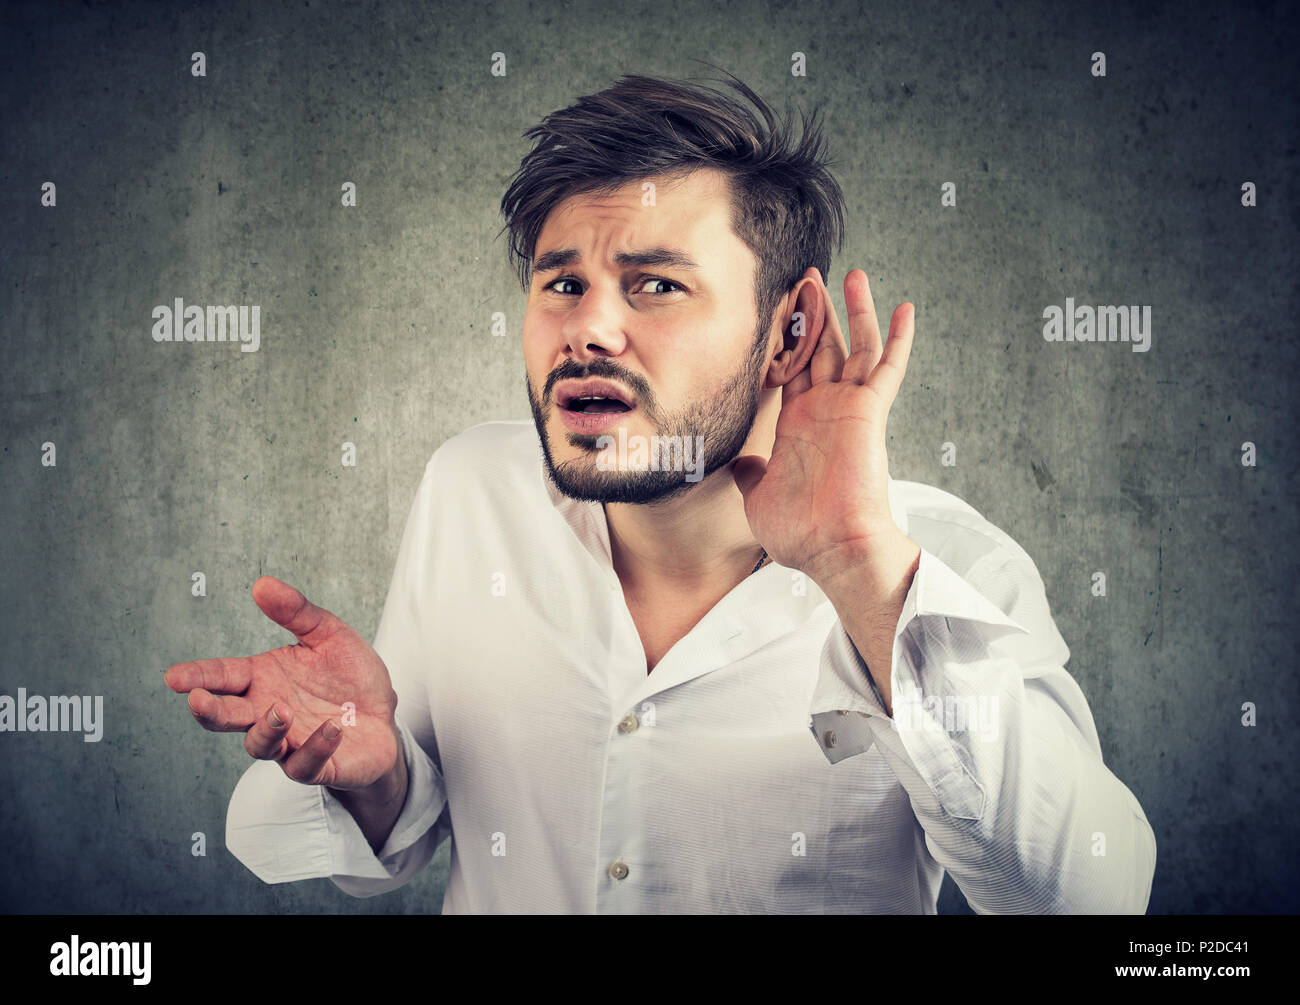 Frowning young man having problems with hearing and looking at camera in misunderstanding gesturing to speak louder - Stock Image